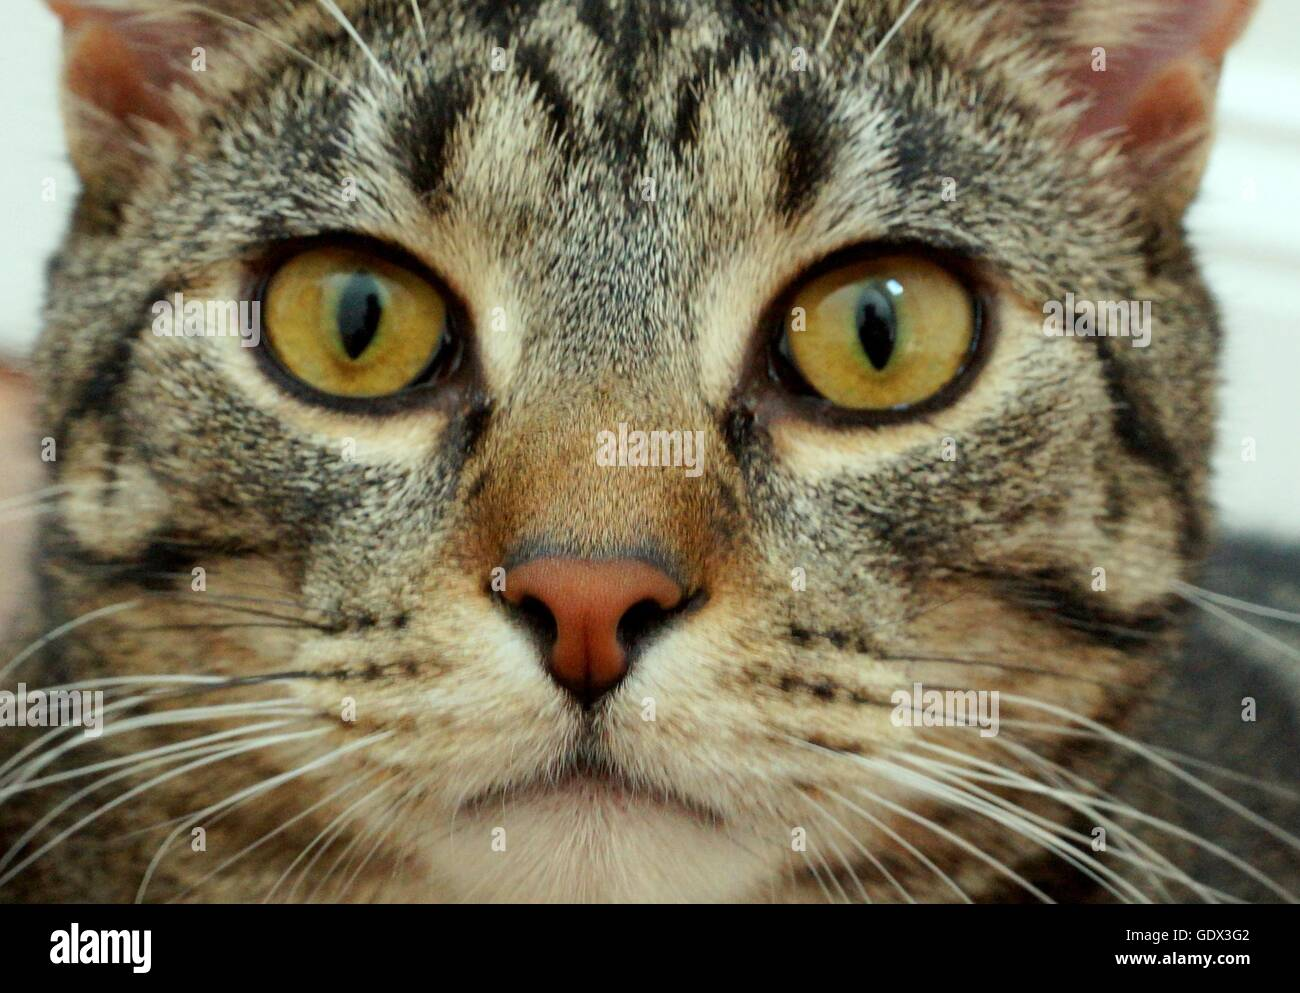 Close-up of a cat's face - Stock Image